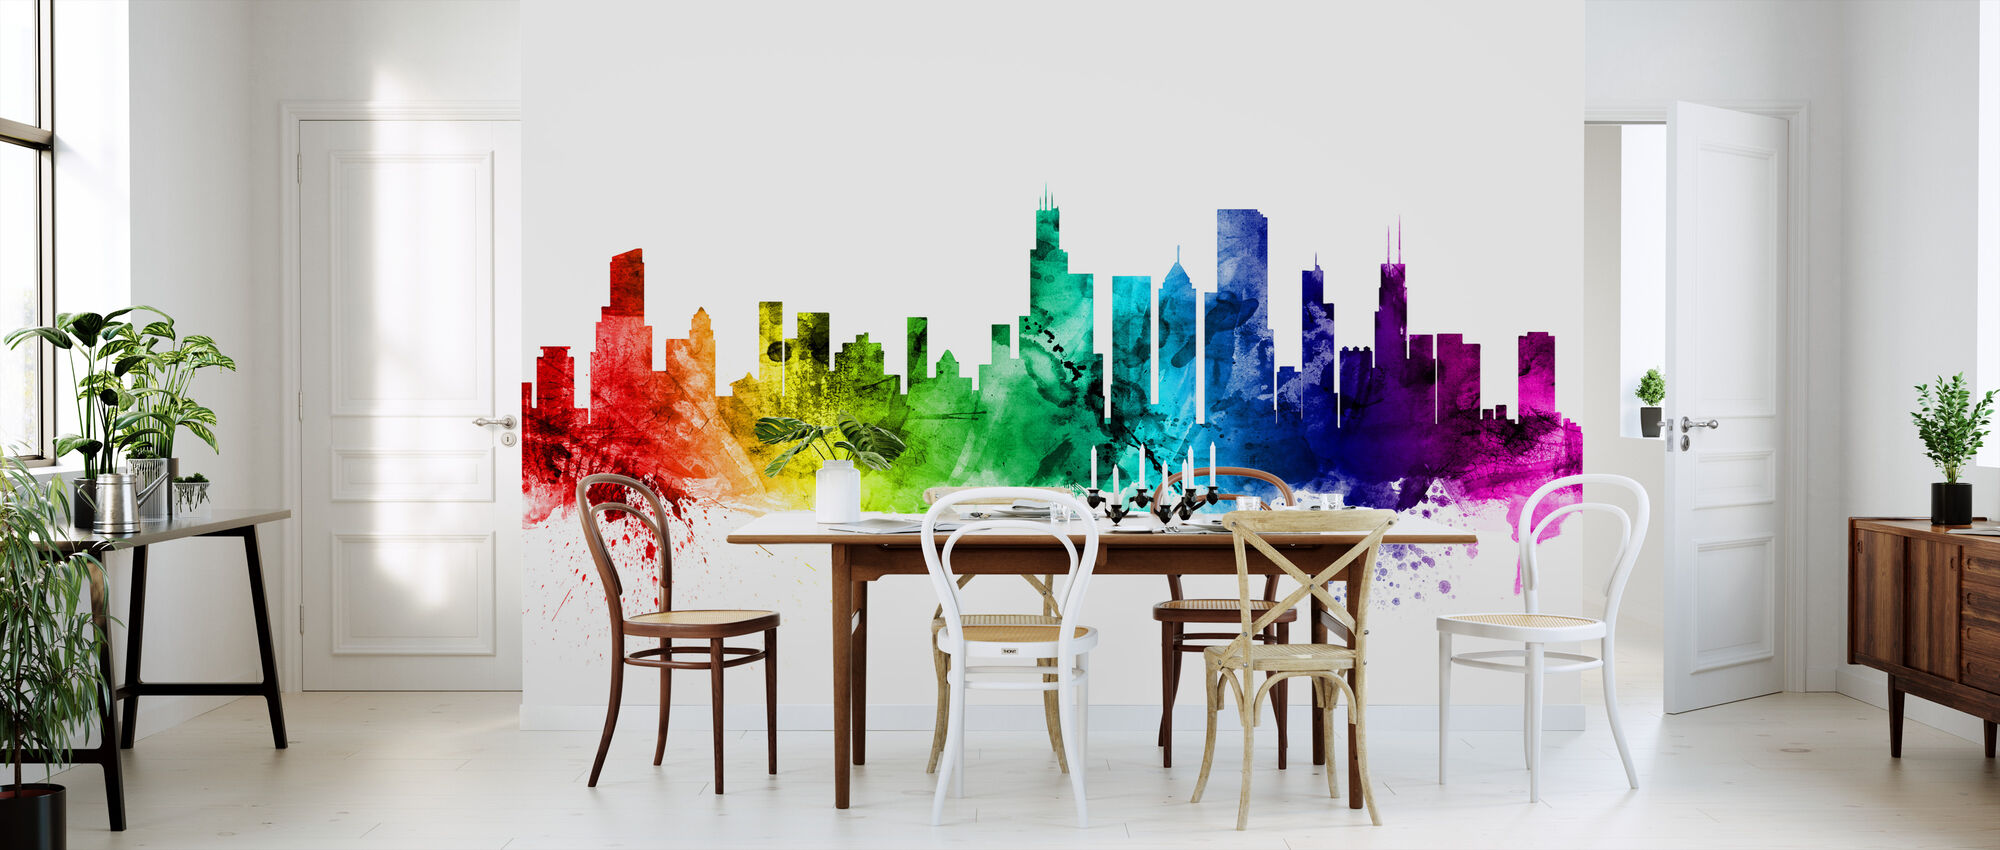 Chicago Illinois Skyline - Wallpaper - Kitchen